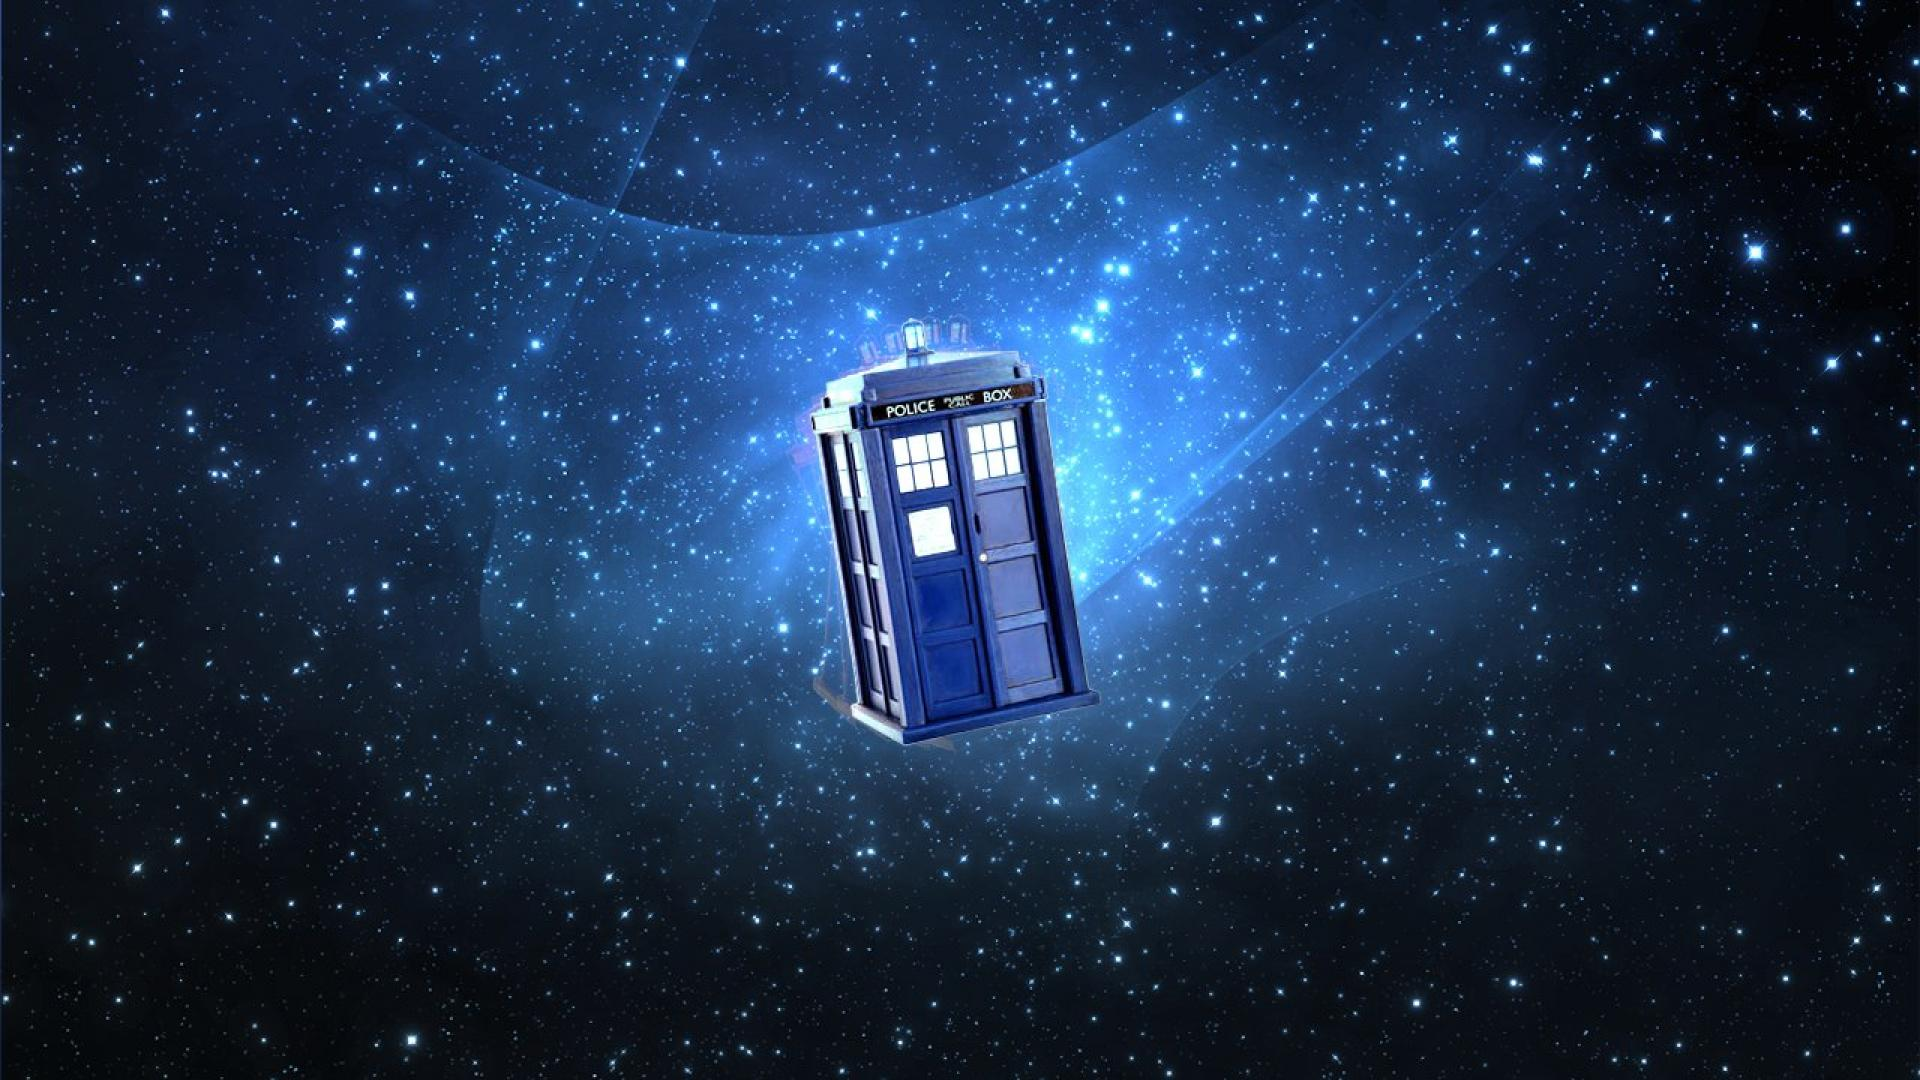 Download Doctor Who Wallpapers 1920x1080